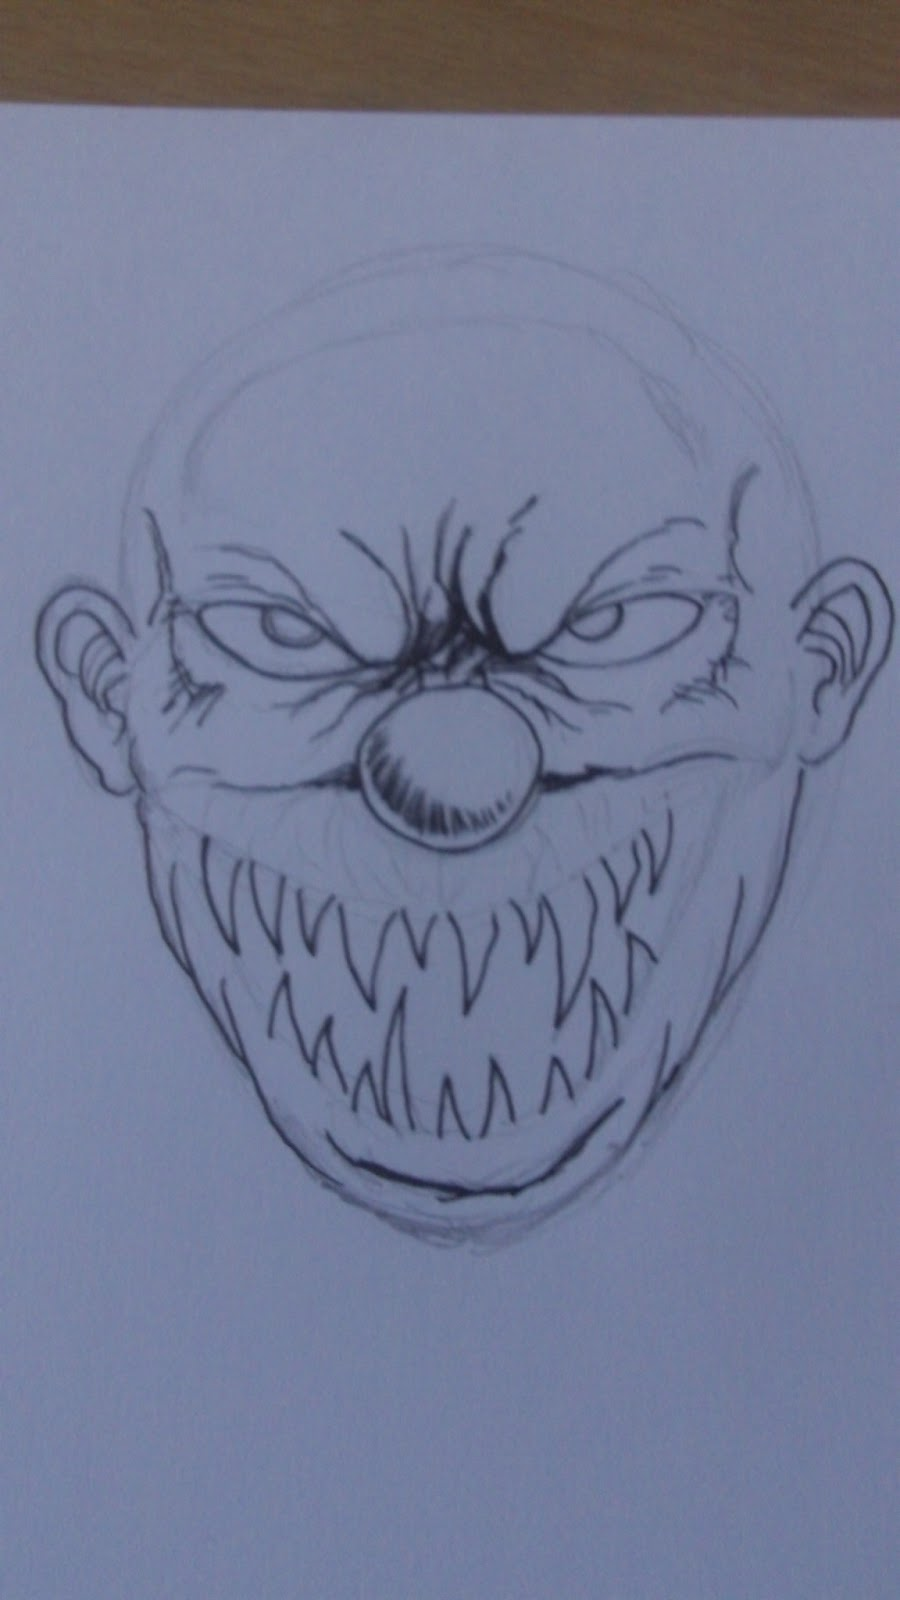 Wayne Tully Fantasy Art: How To Draw A Demon Clown Face